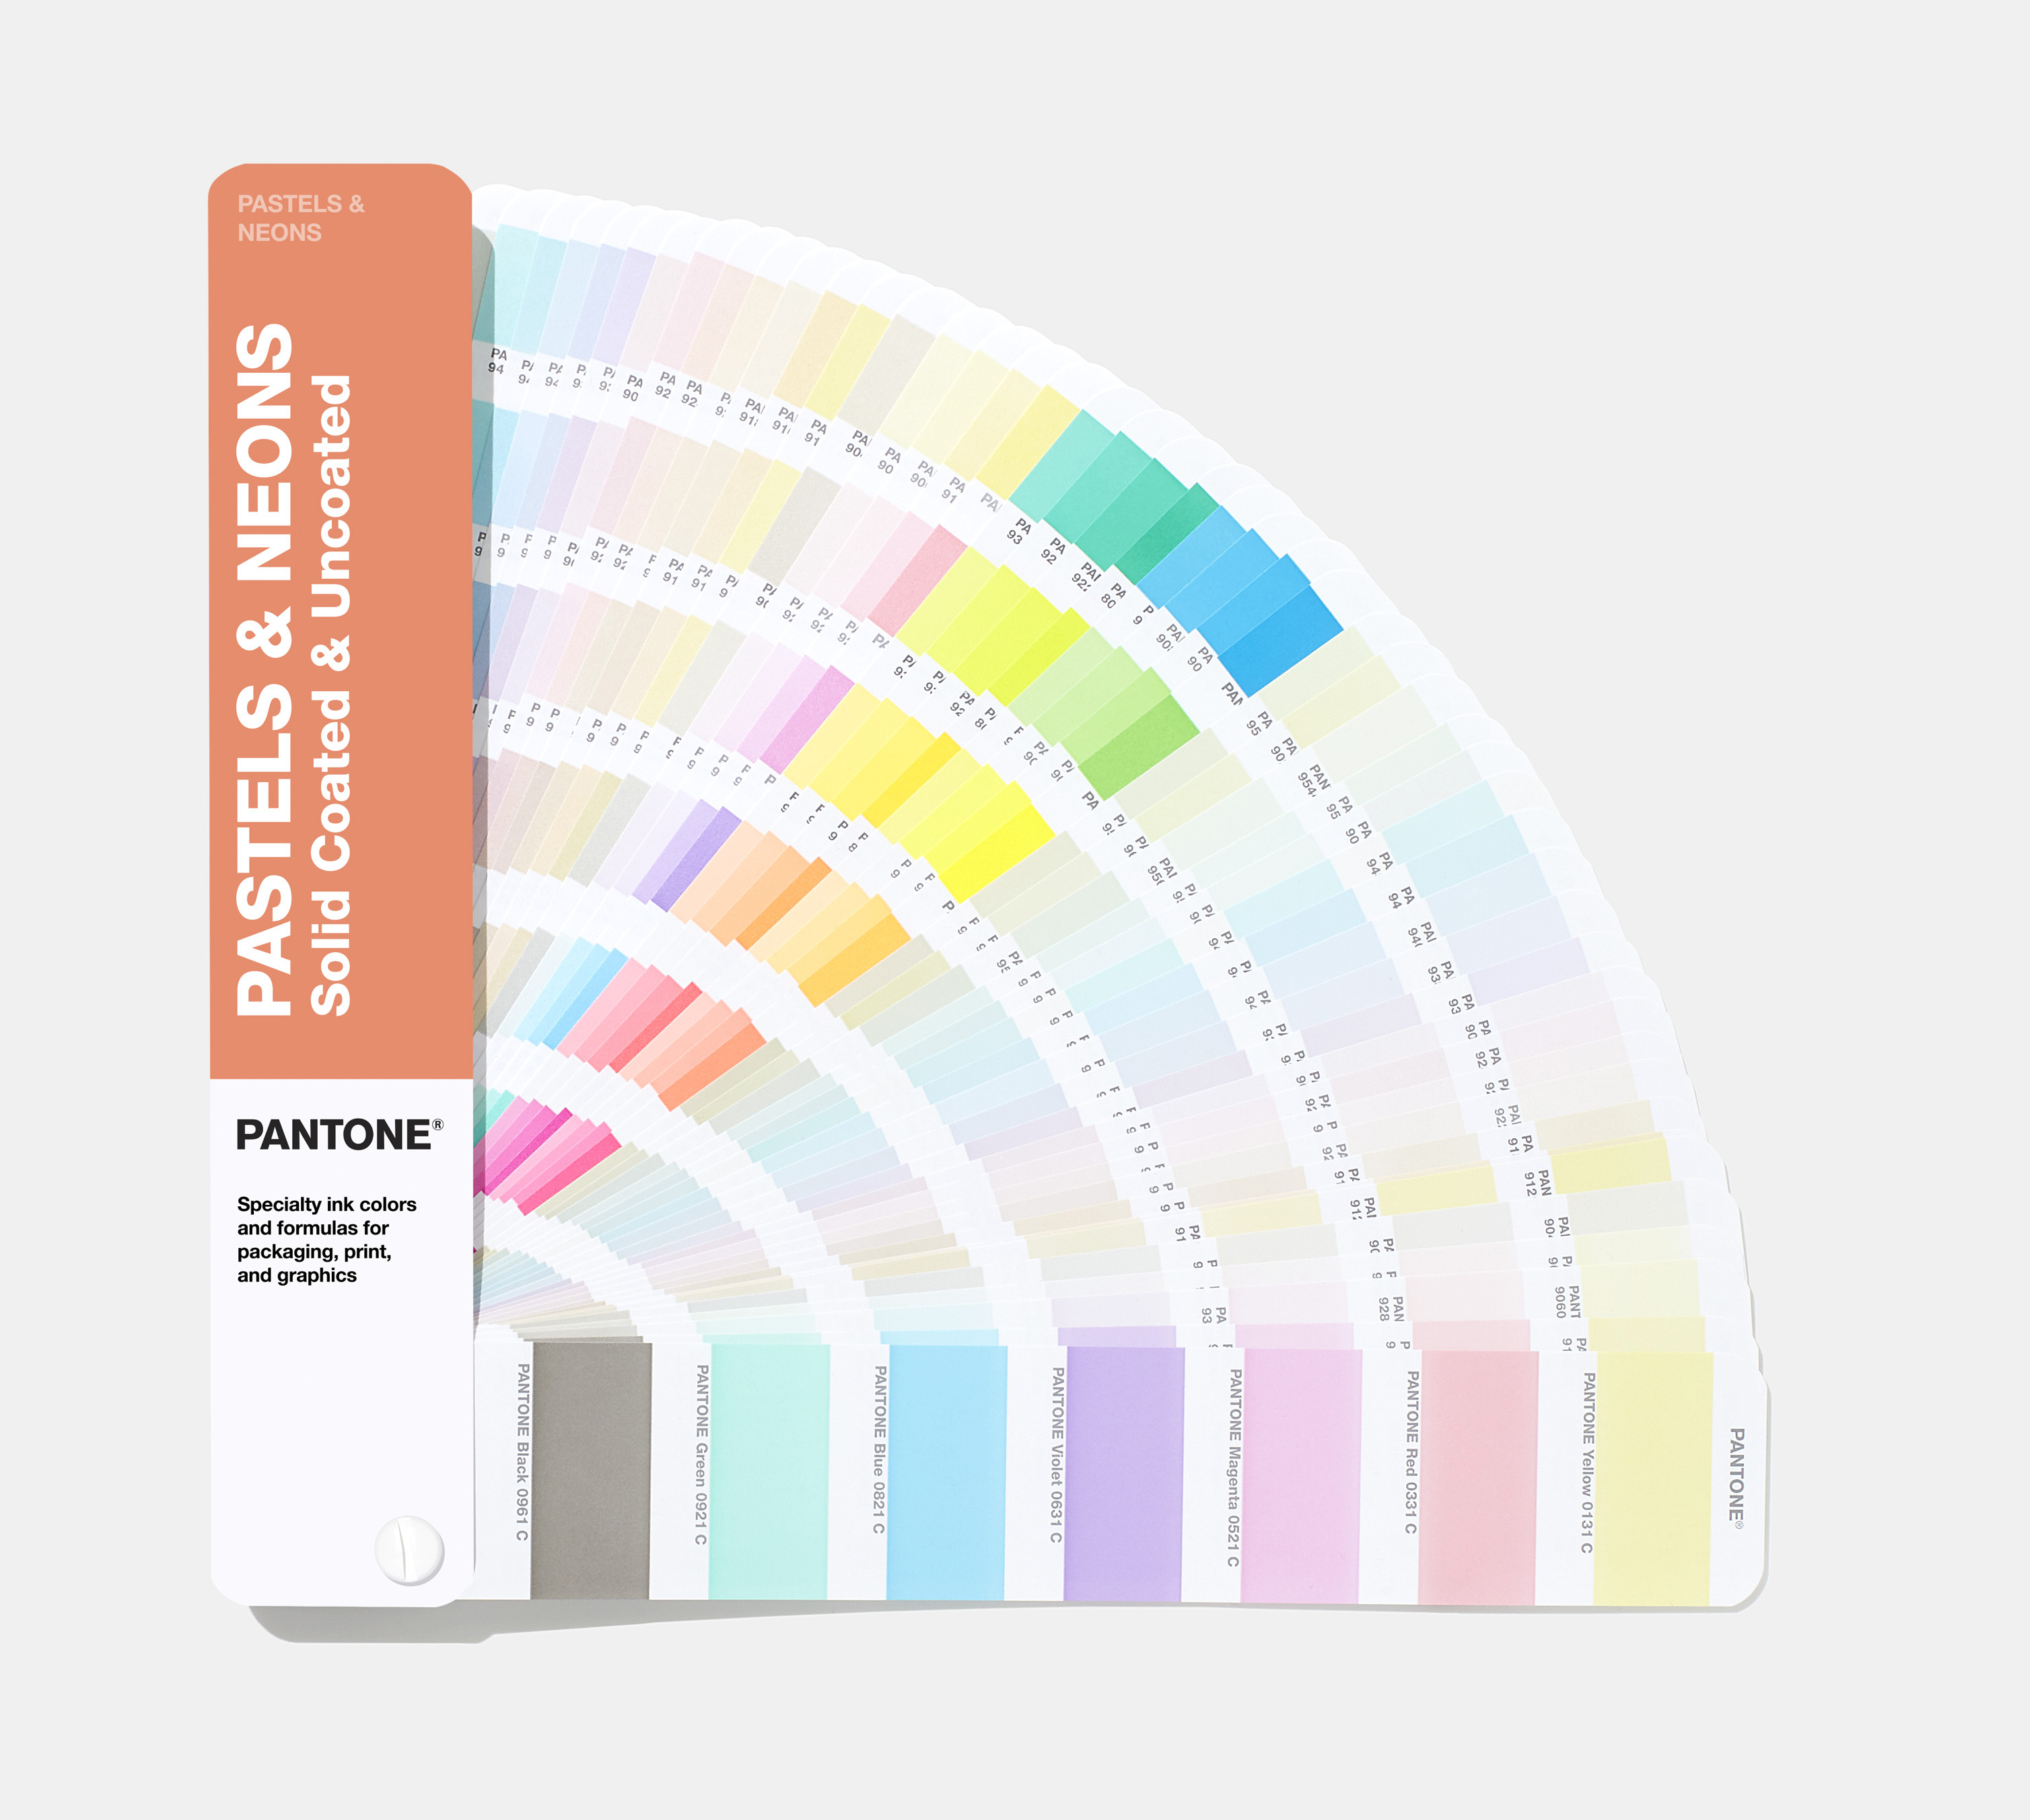 Pastels & Neons Guide GG1504A